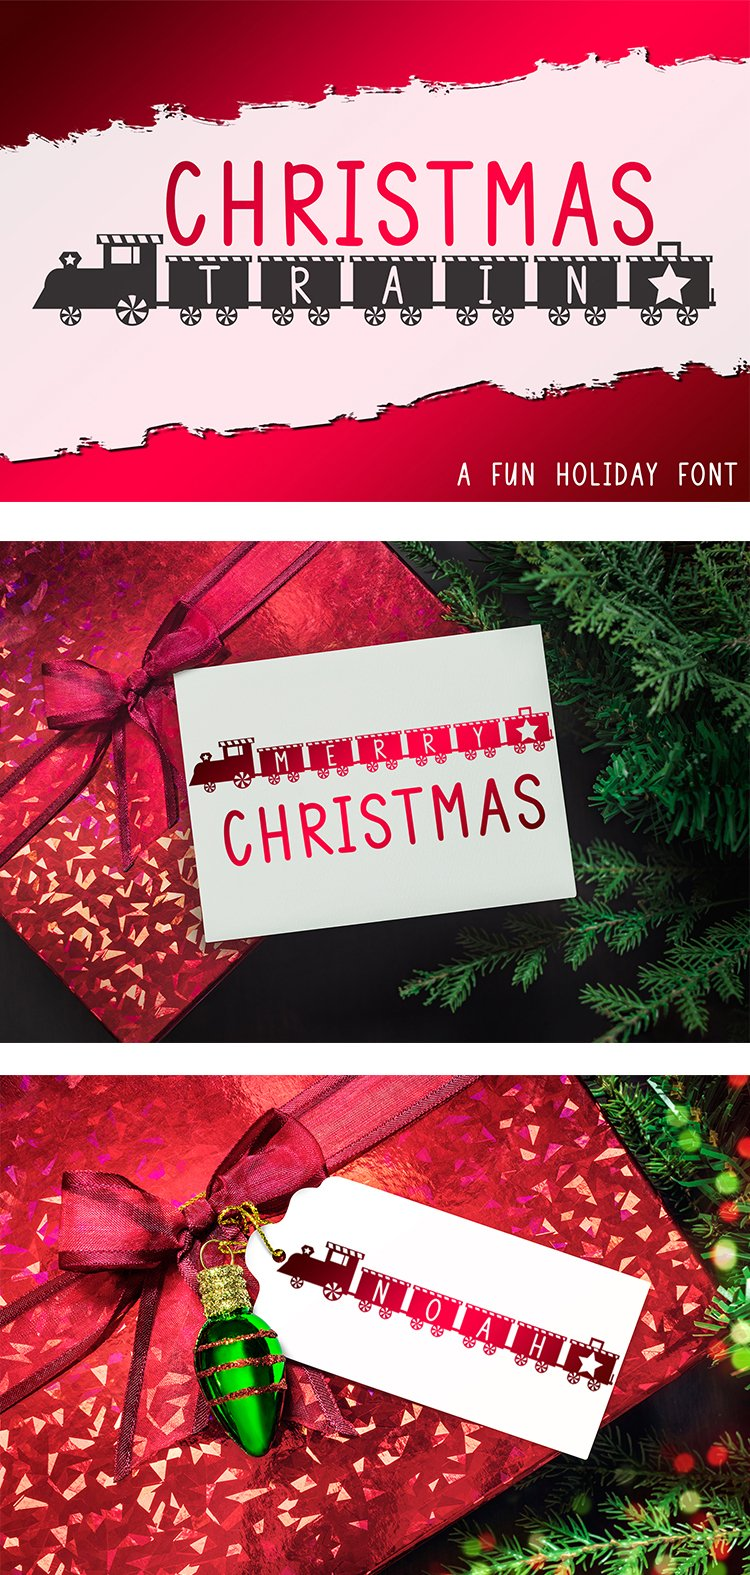 Christmas Train - A Fun Holiday Font example image 8